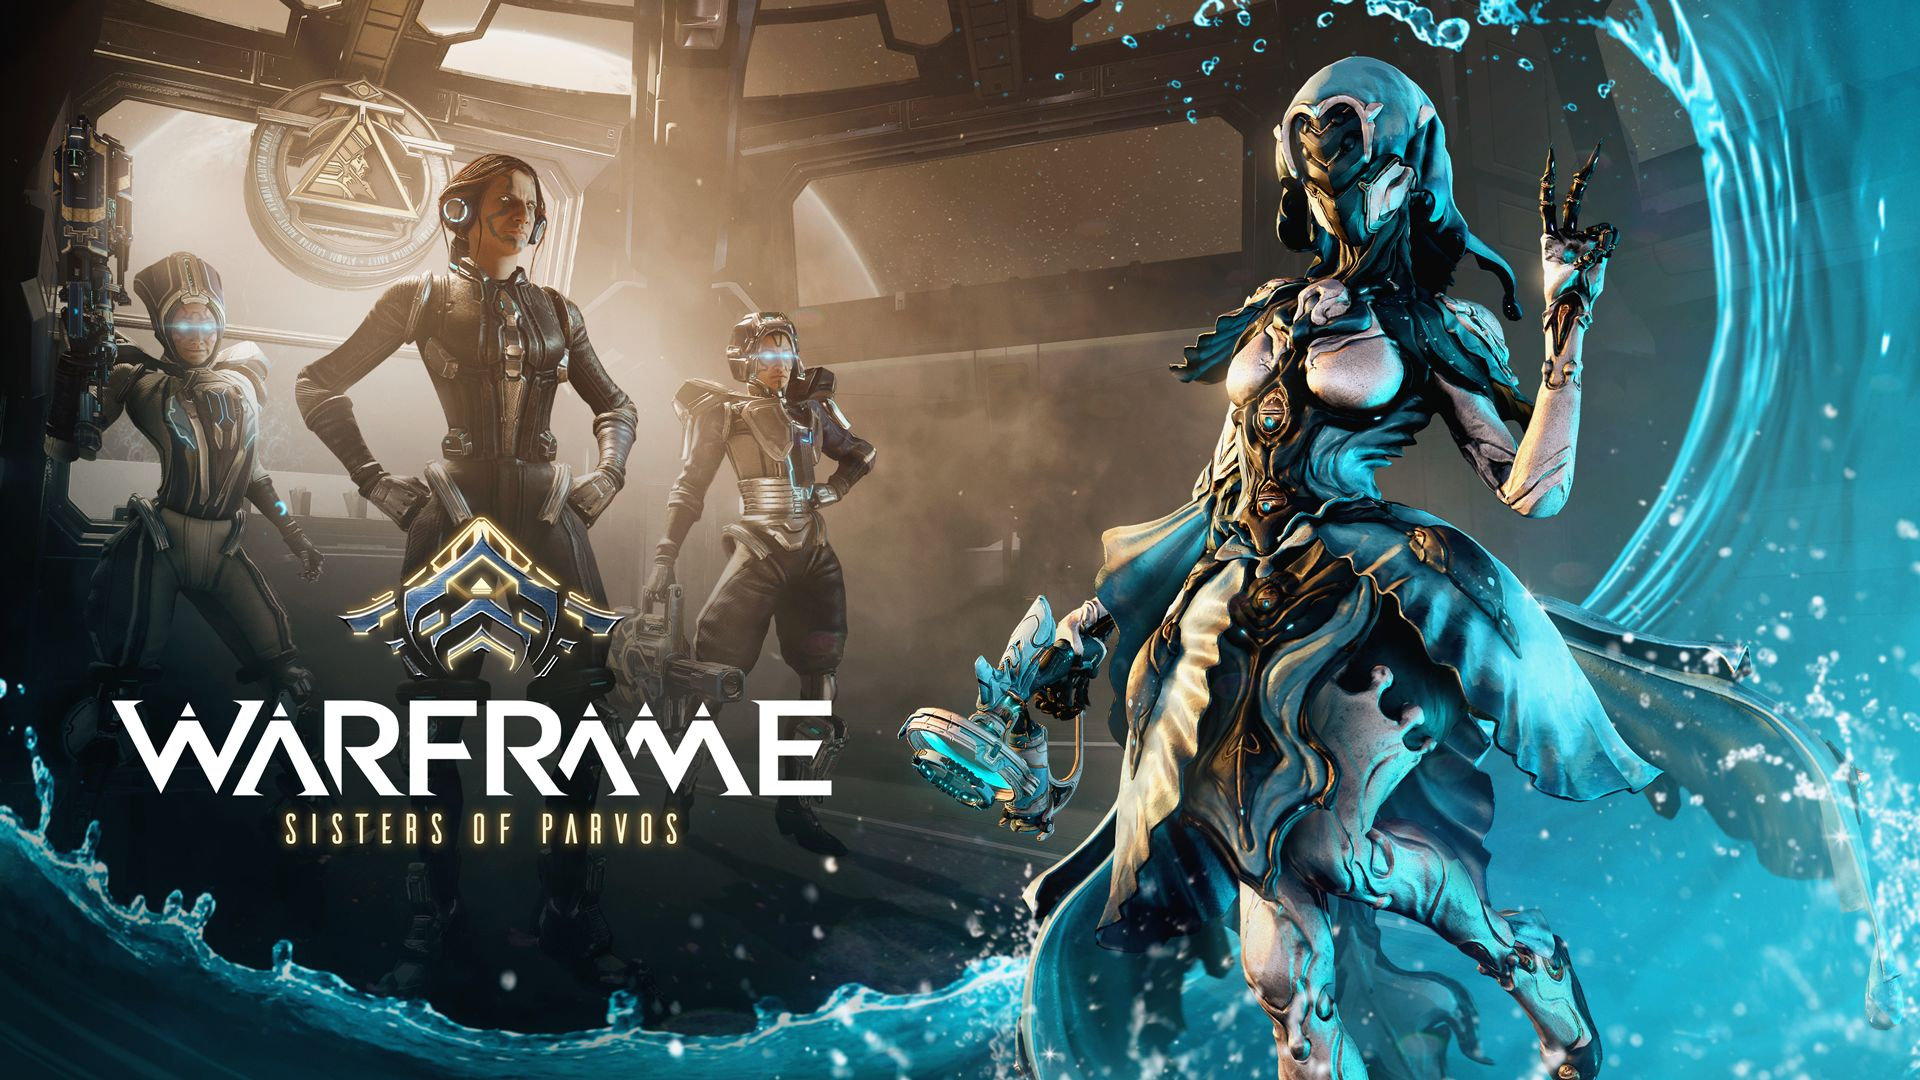 /warframe-update-305-sisters-of-parvos-brings-lich-changes-melee-rework-and-new-warframe-si15377r feature image